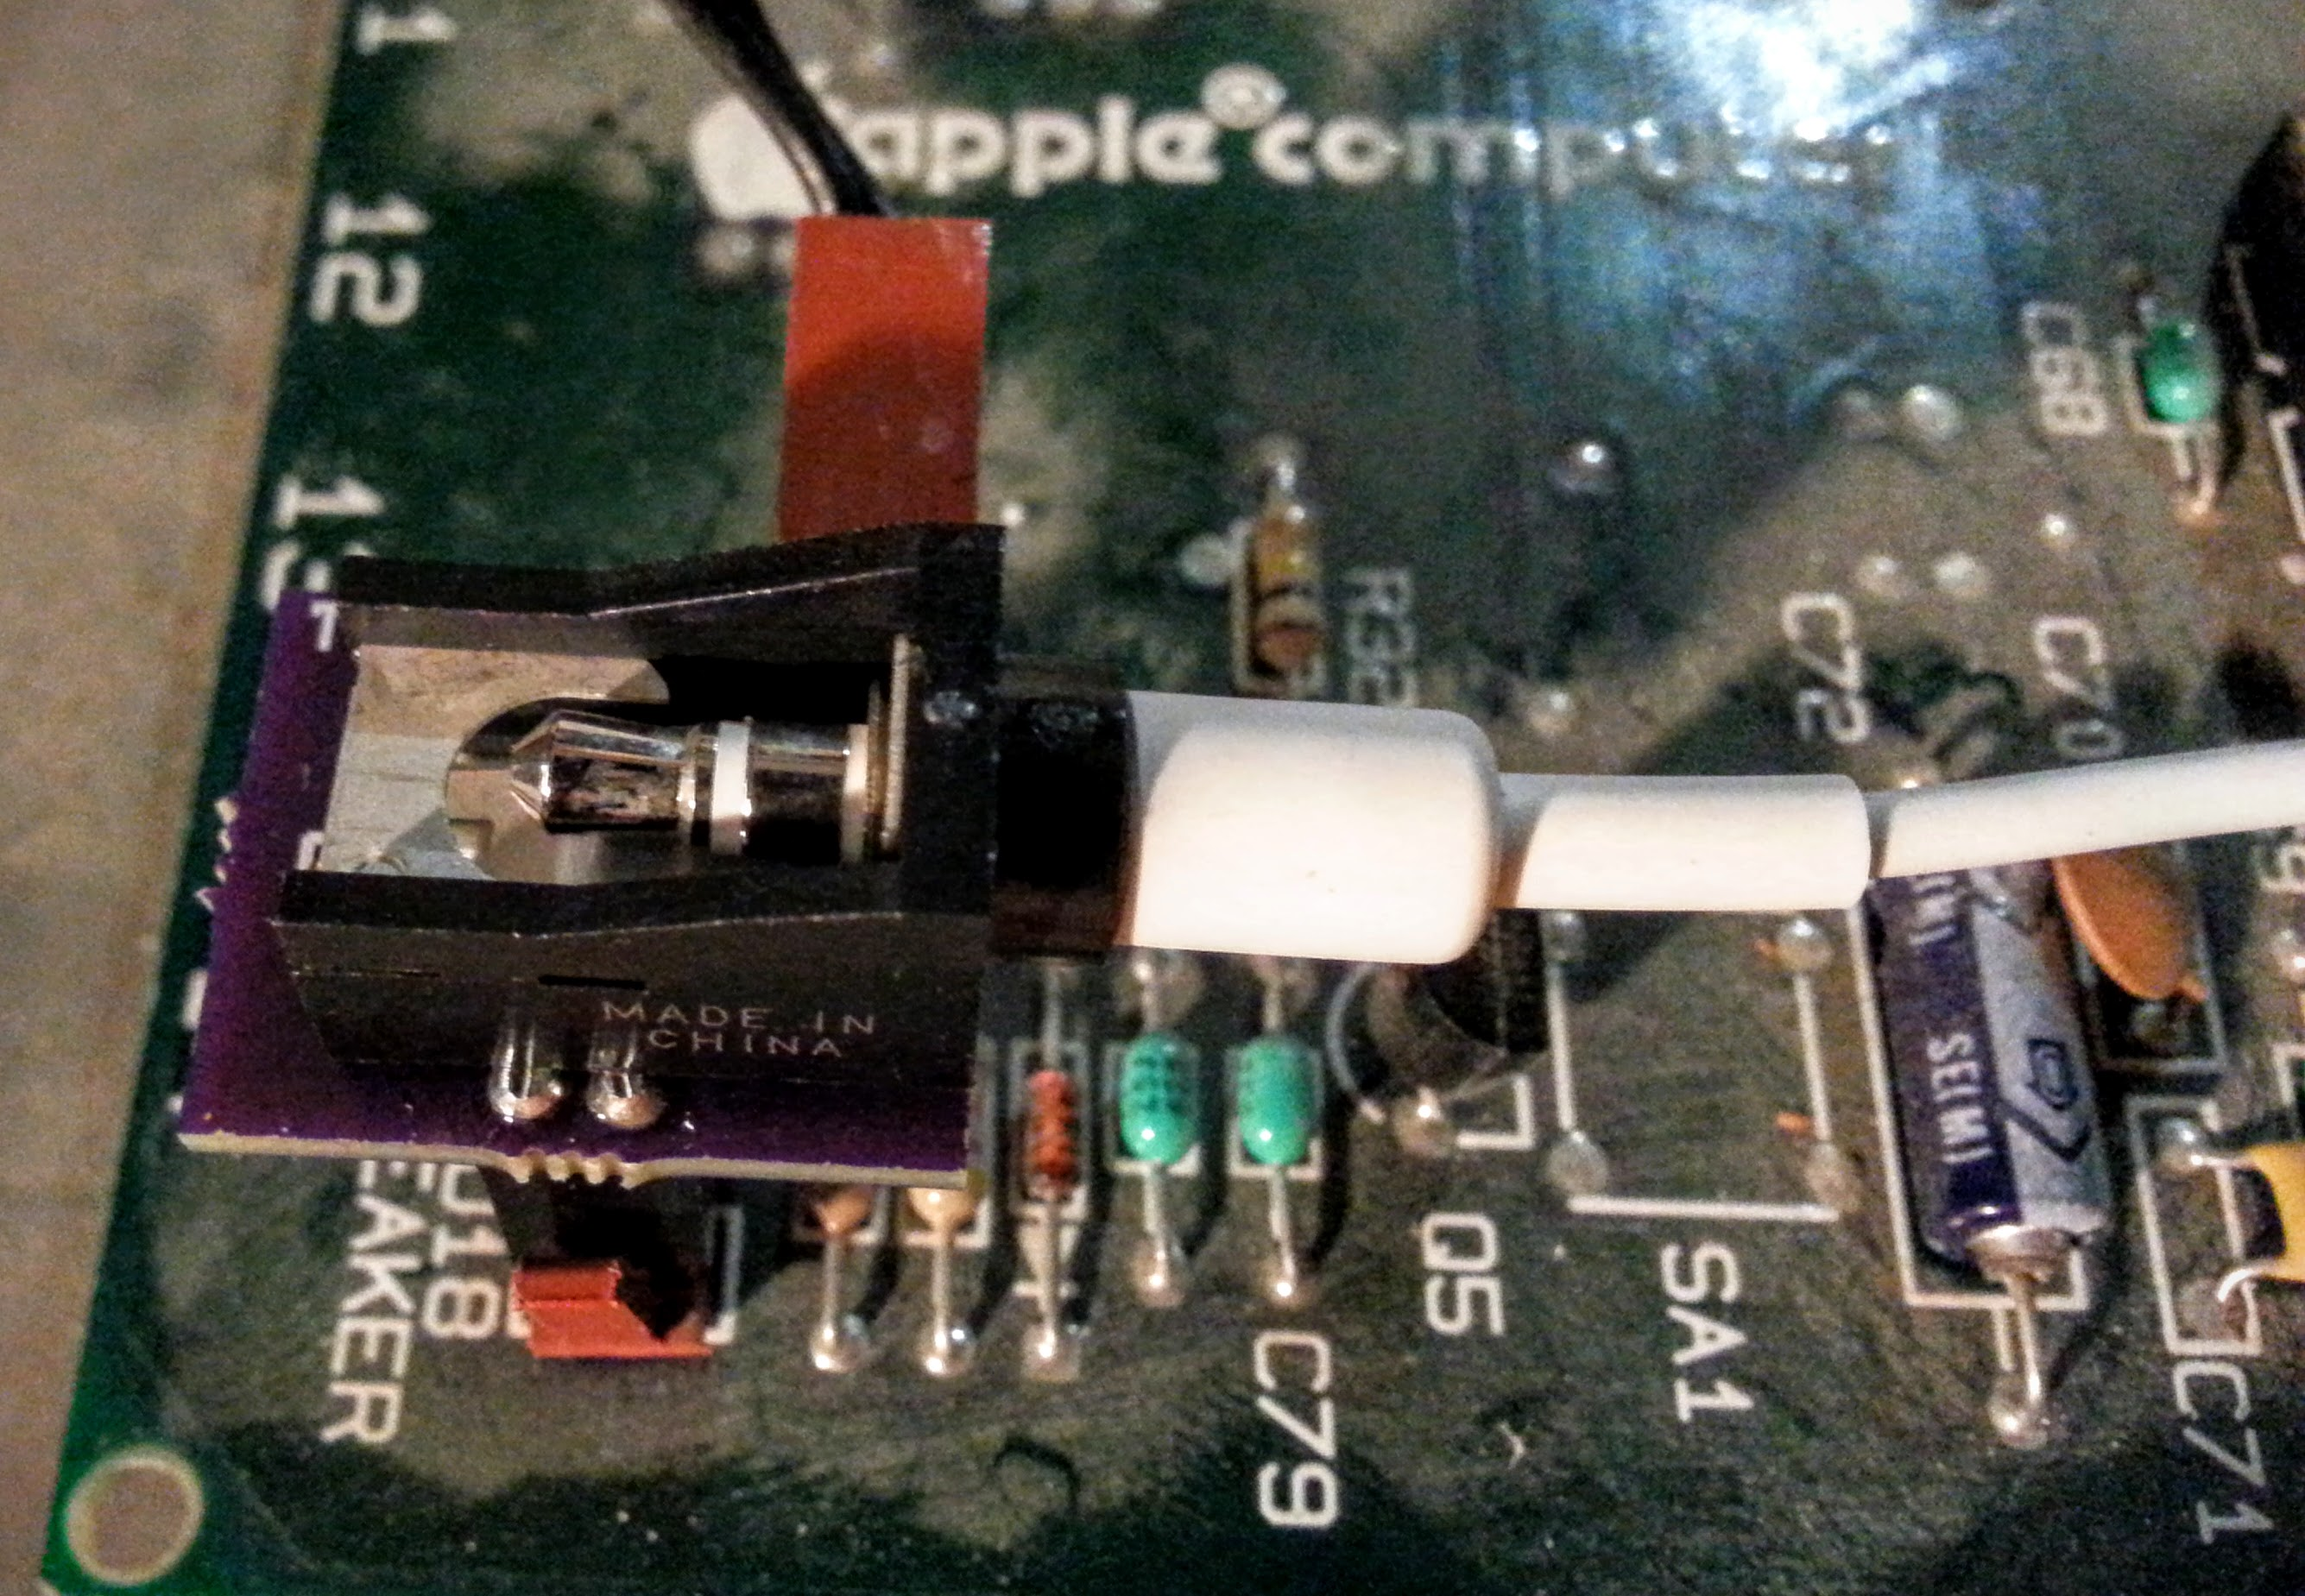 Speaker/Headphone adapter for Apple II